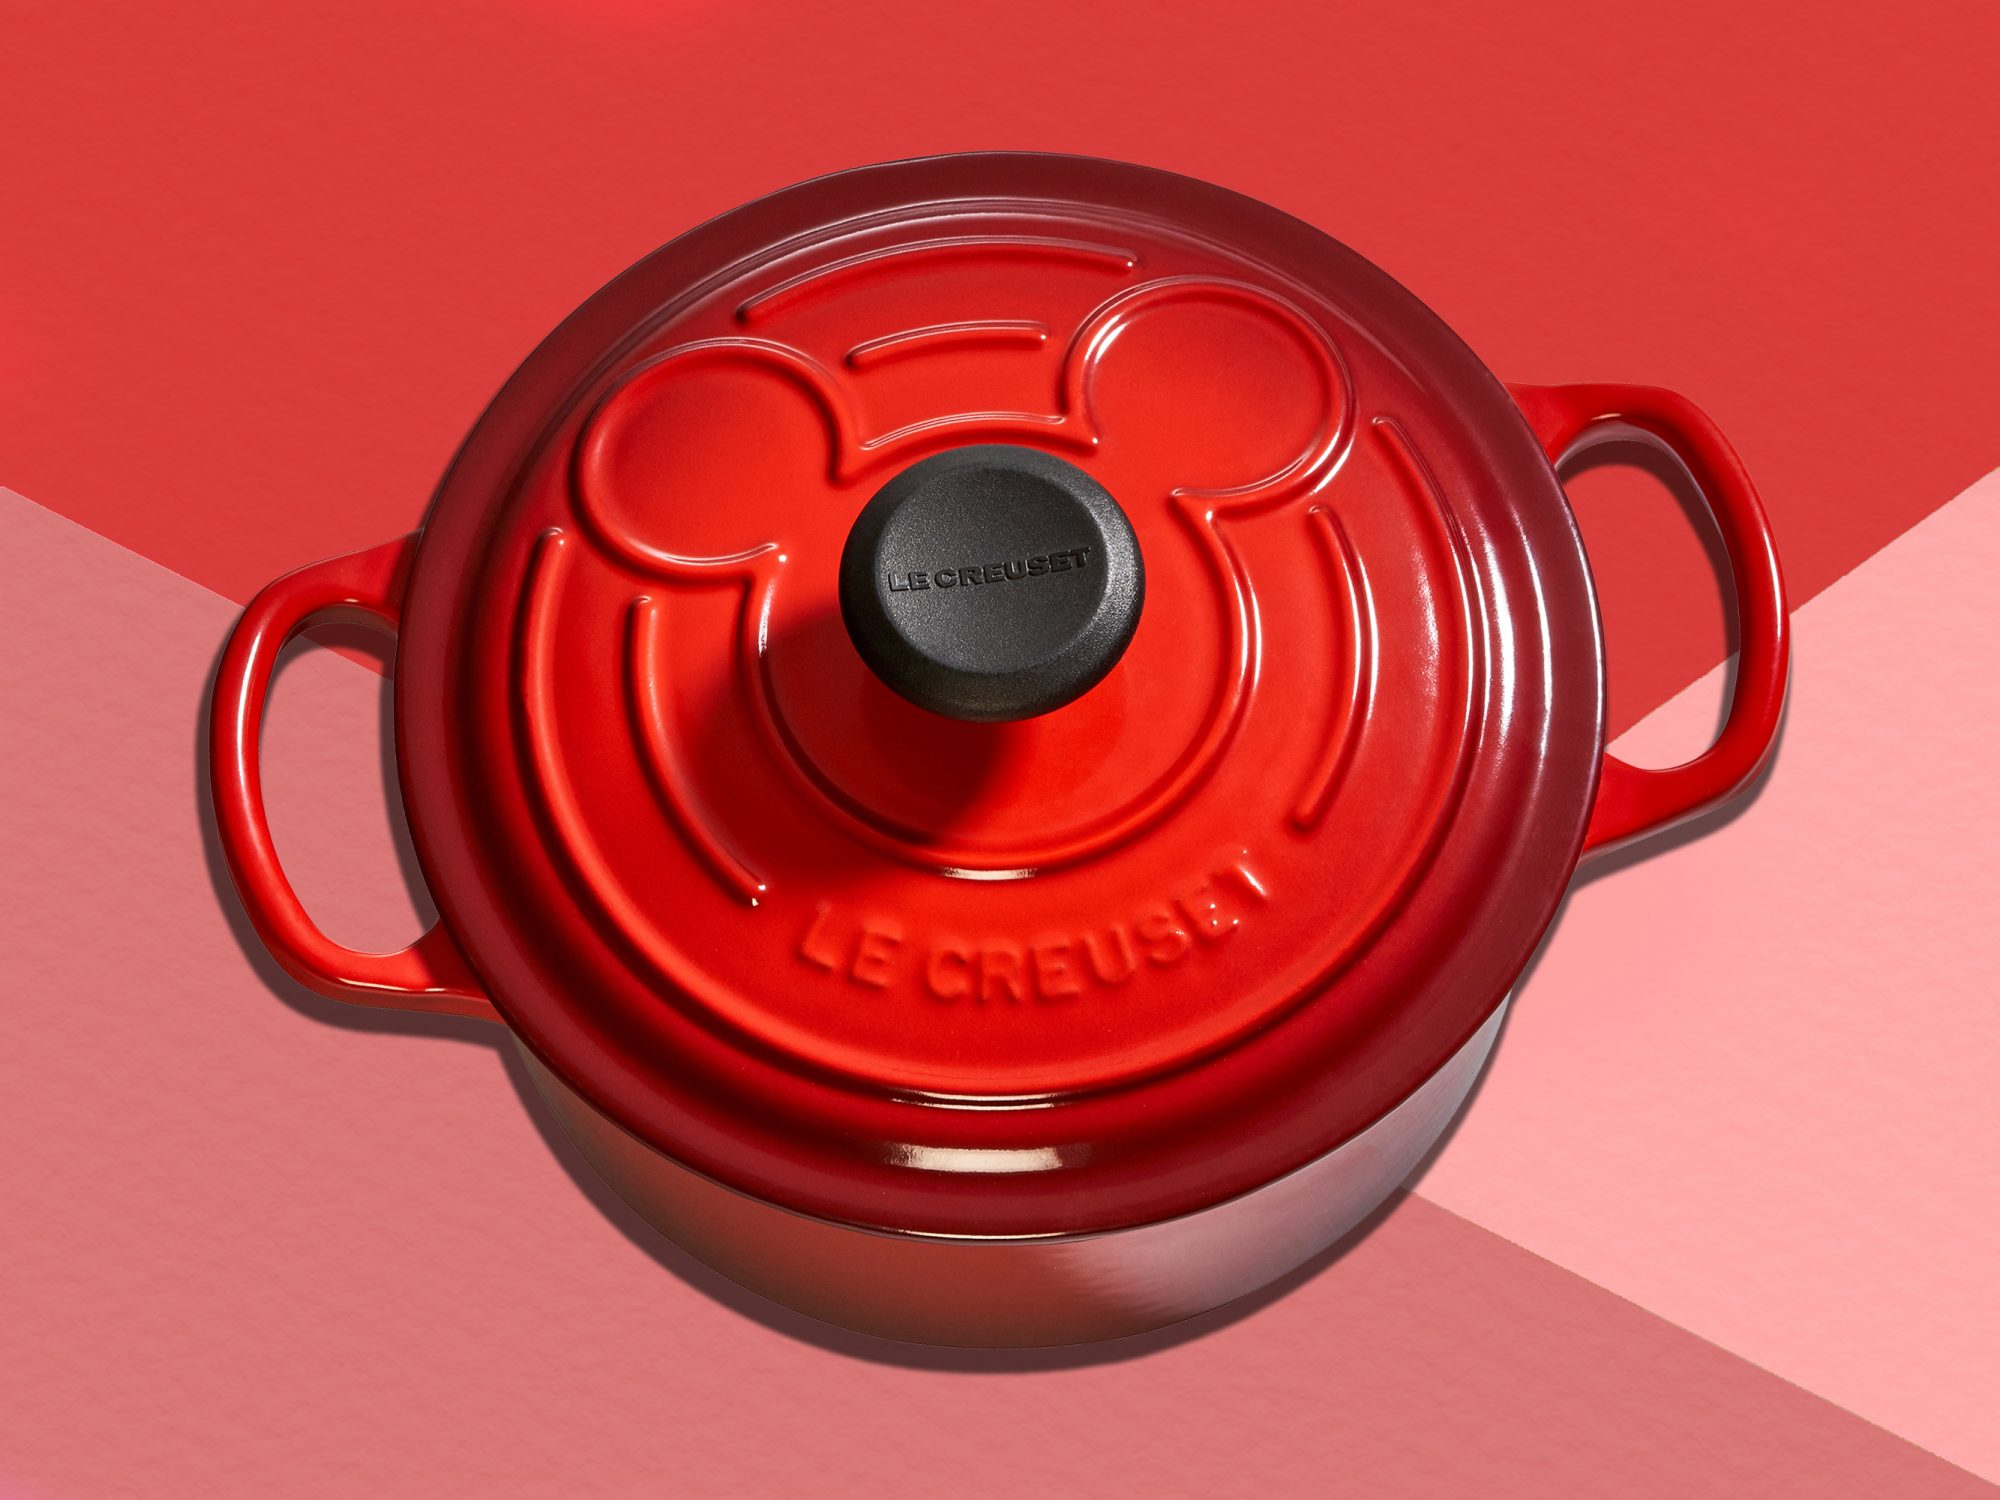 Le Creuset Brings the Magic This Fall With Disney-Themed Cookware